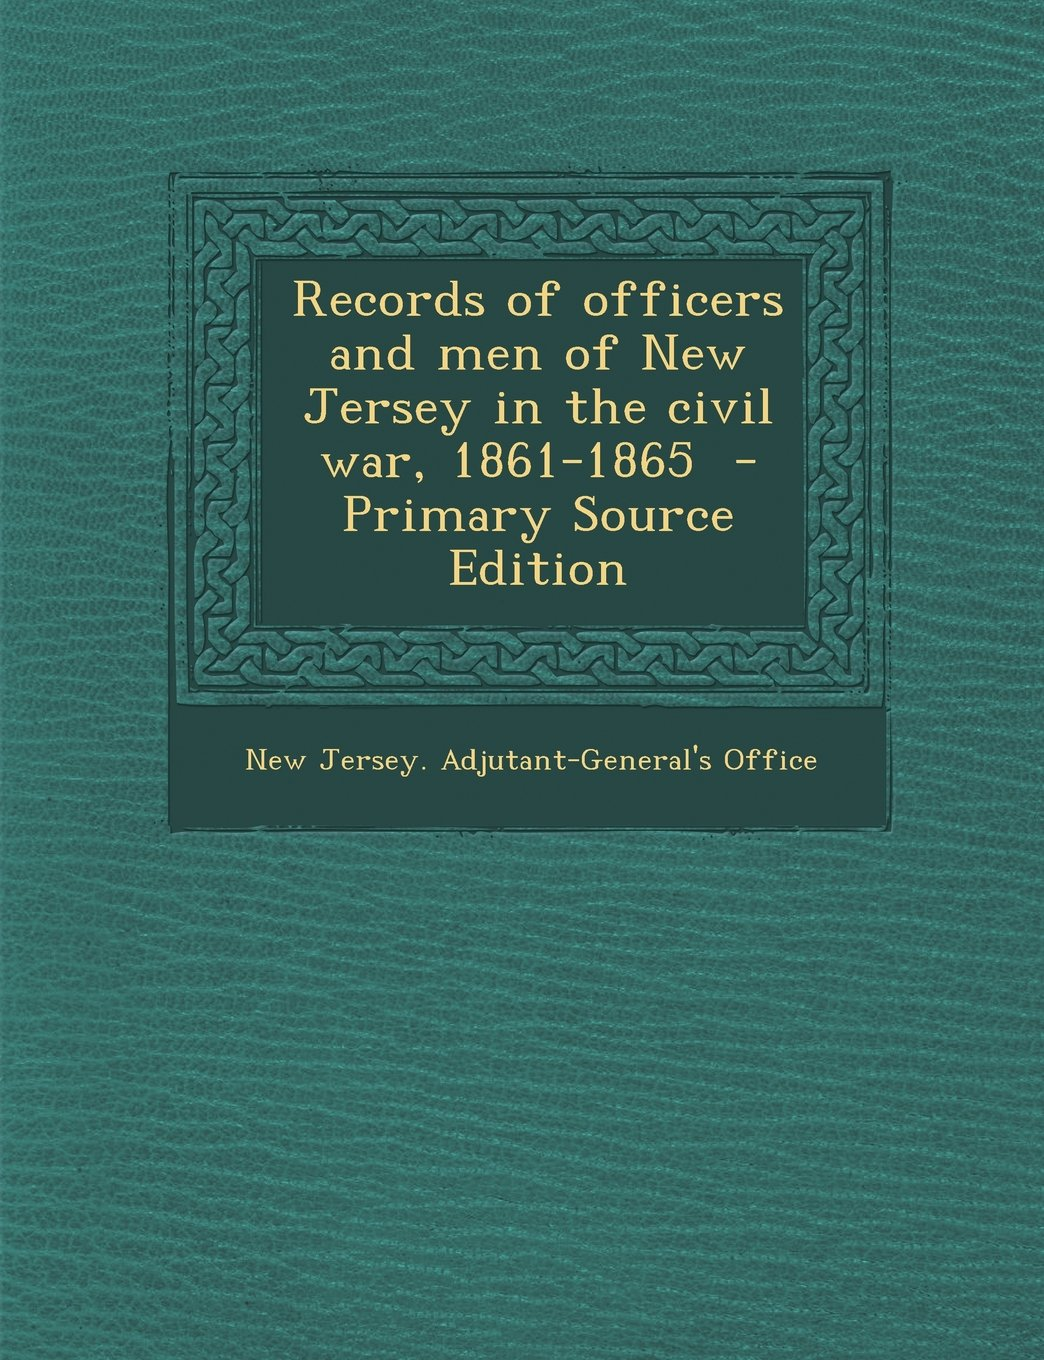 Records of officers and men of New Jersey in the civil war, 1861-1865 ebook